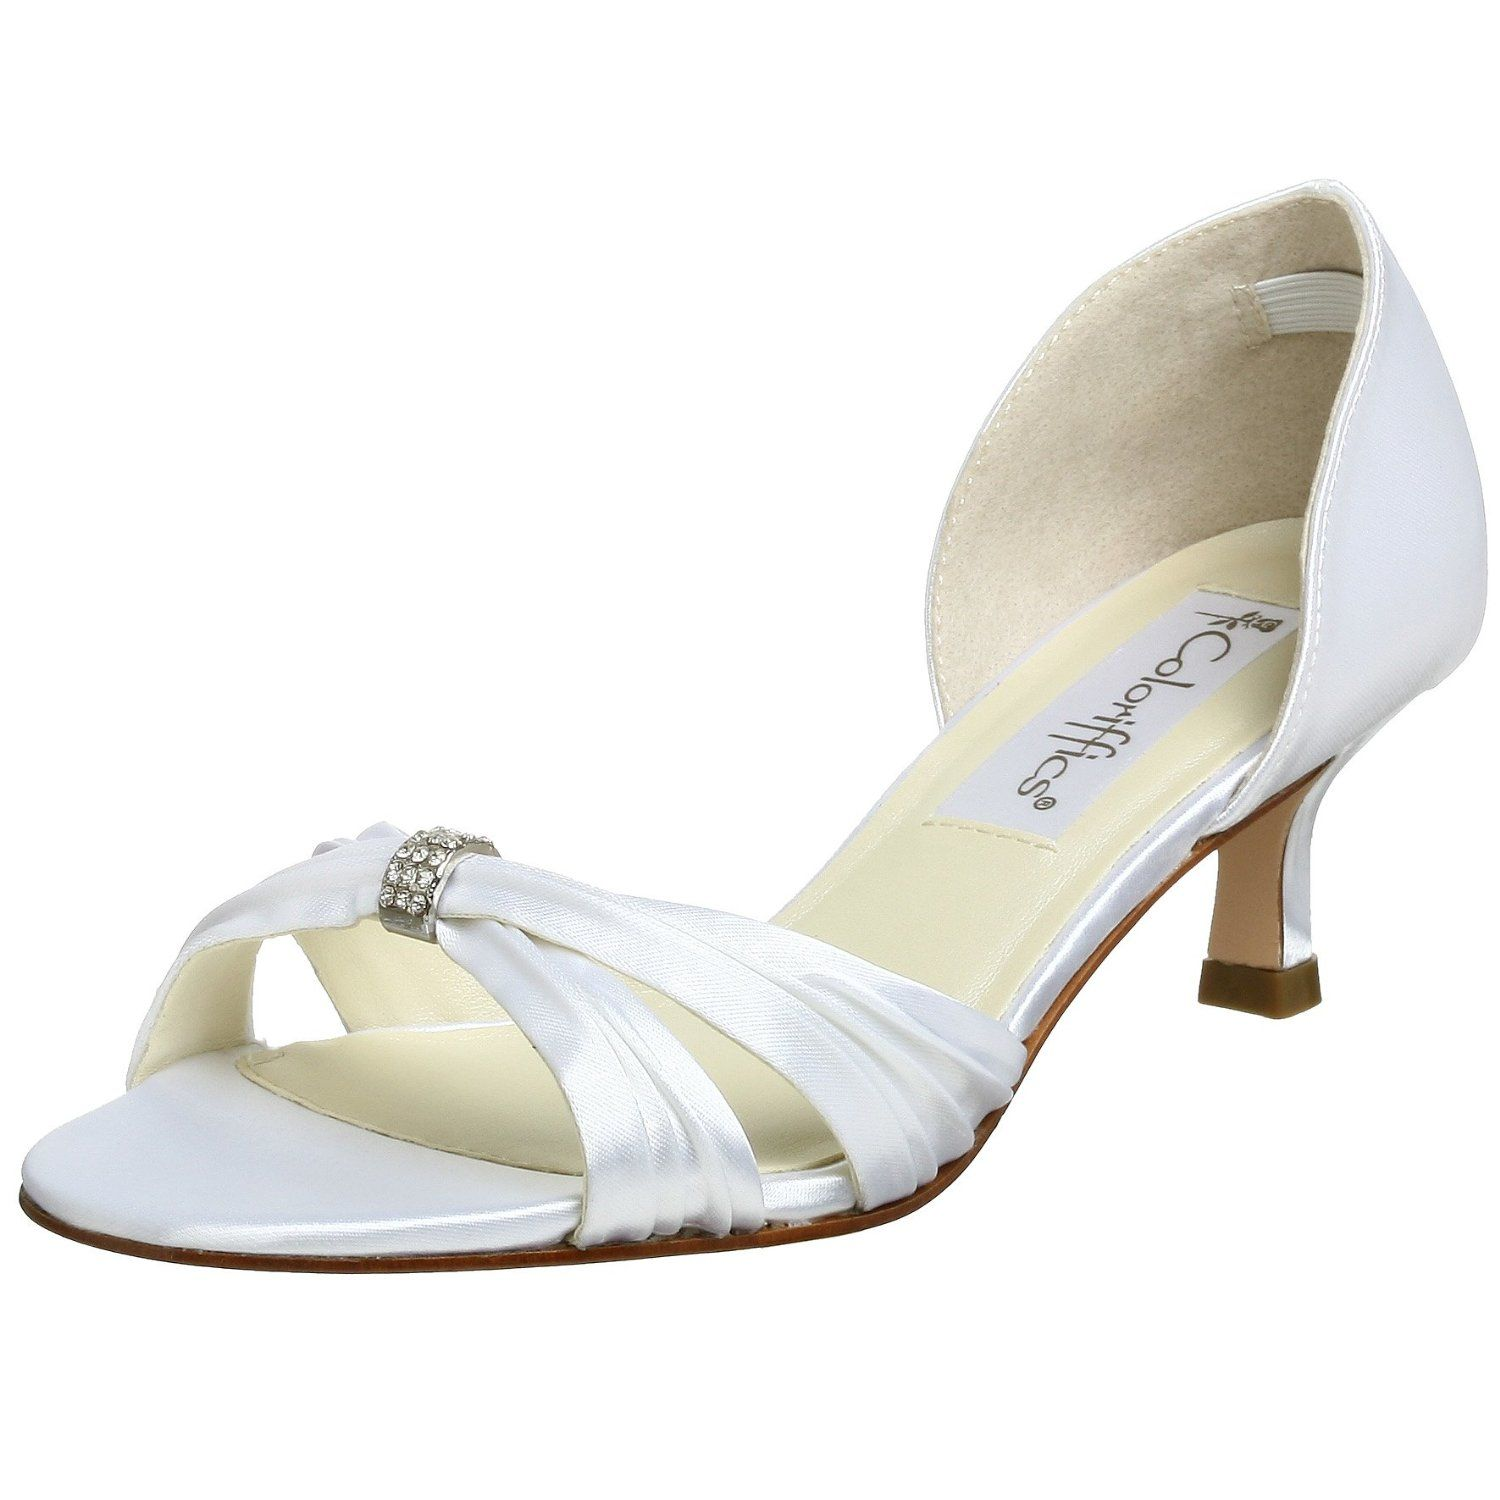 Coloriffics Women S Fantasy Sandal 1 Inch Heel Comfortable Heels Low Heel Ni A Sandal Shoes White Wedding Shoes Wedding Shoes